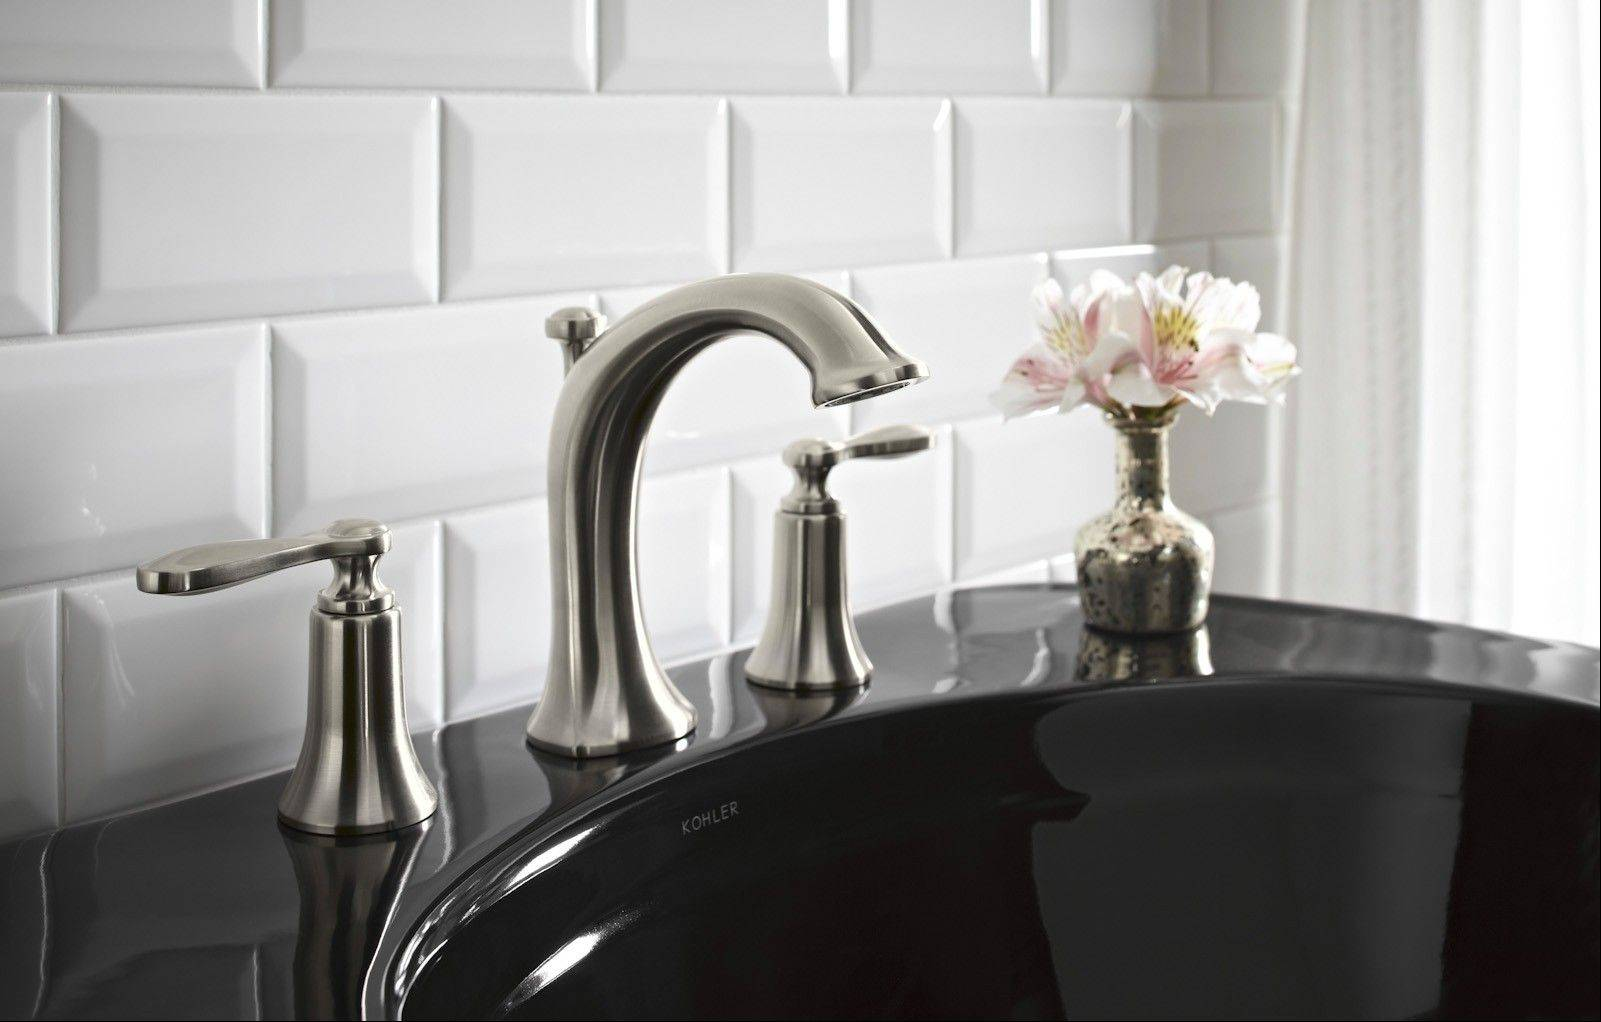 Today's faucet finishes are very durable, but you should always clean with care. Use nonabrasive mild cleaners, rinse thoroughly with a soft damp cloth, then blot dry.